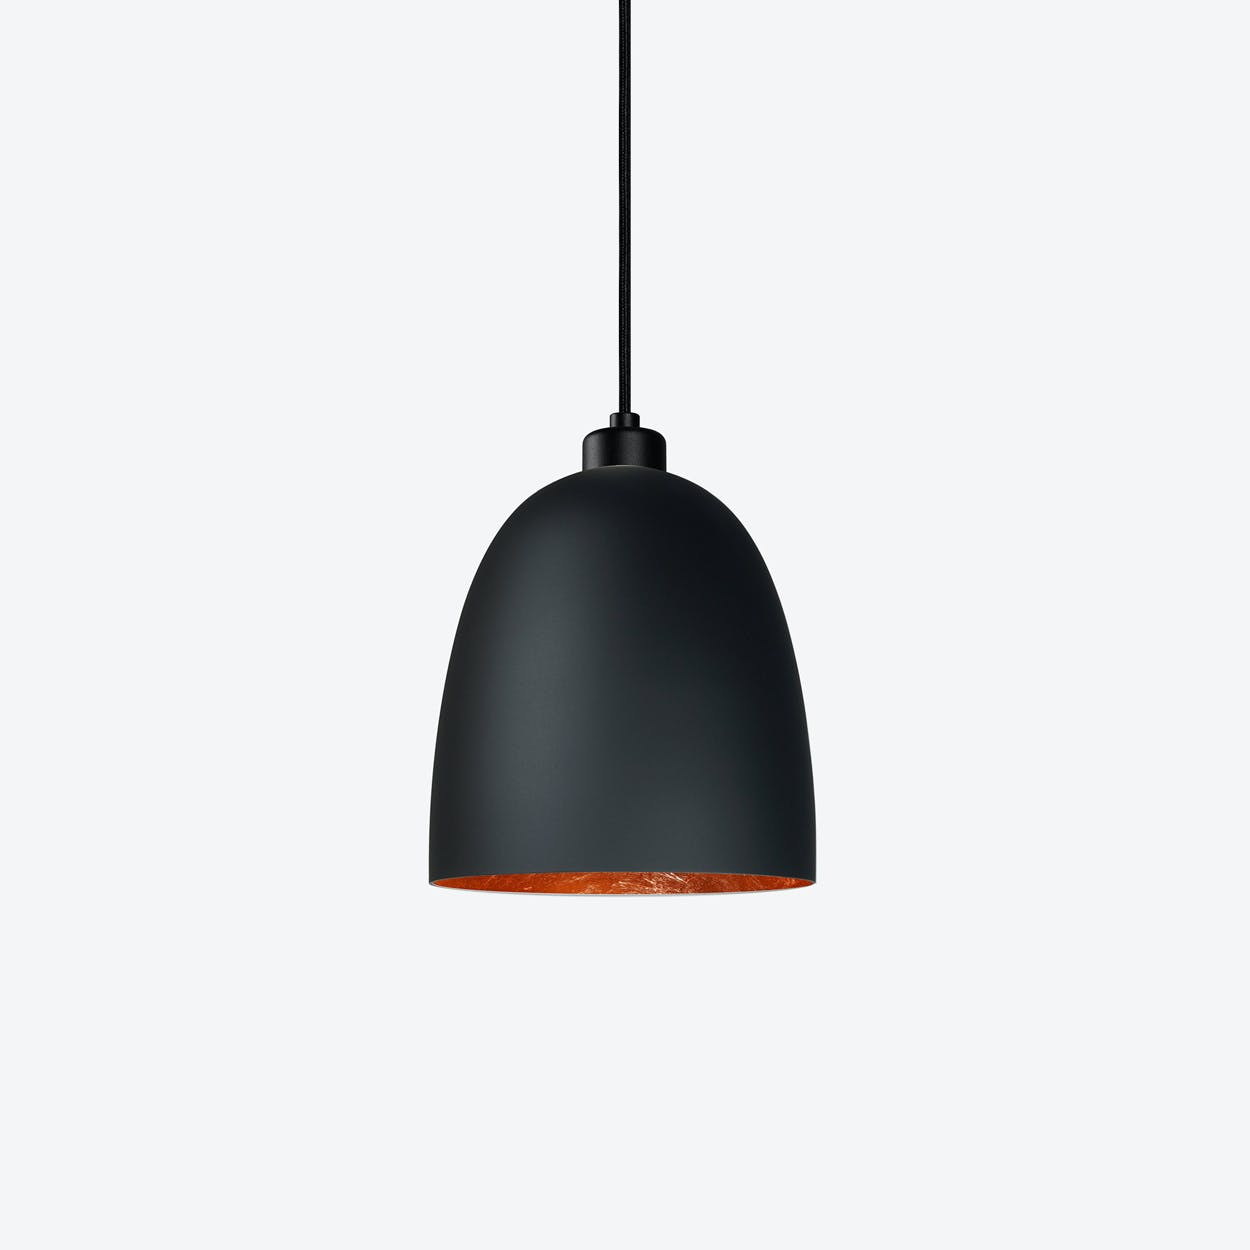 AWA Single Pendant Light in Matte Black with Copper Leaf